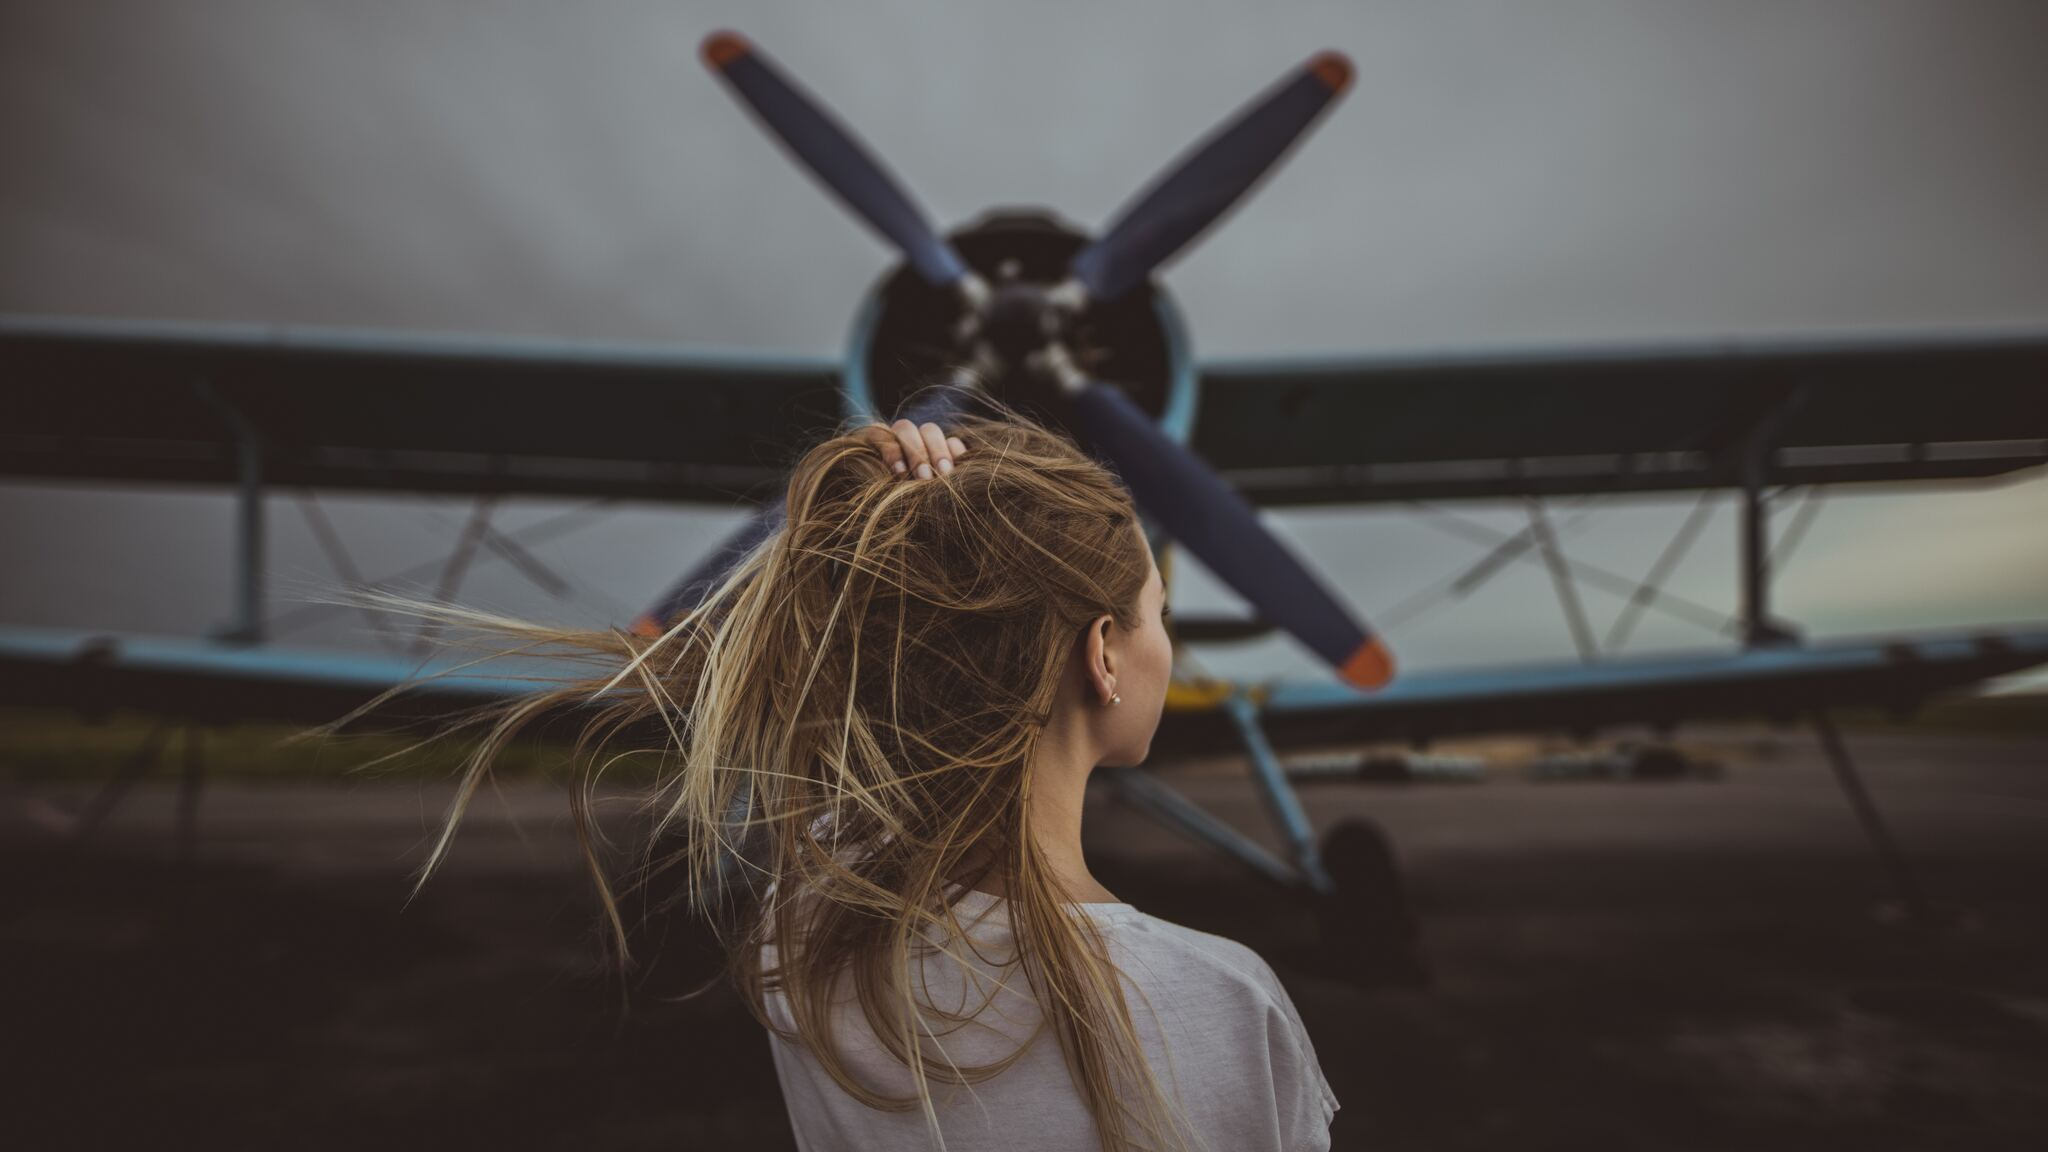 women-hands-in-hair-standing-in-front-of-plane-5k-oc.jpg